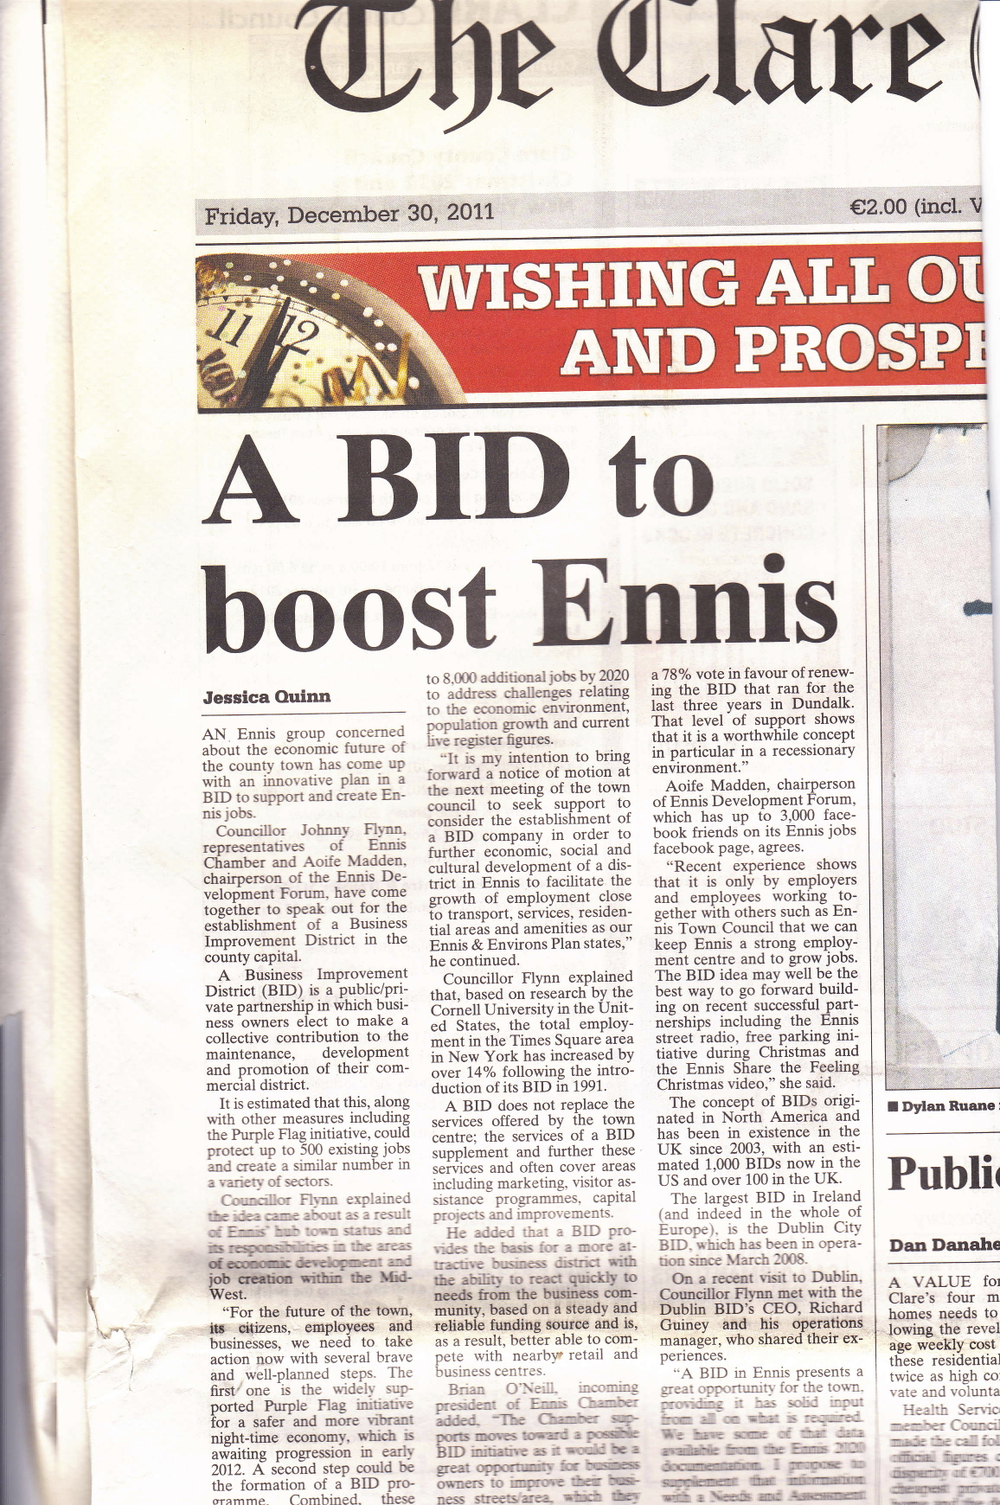 A BID to boost Ennis